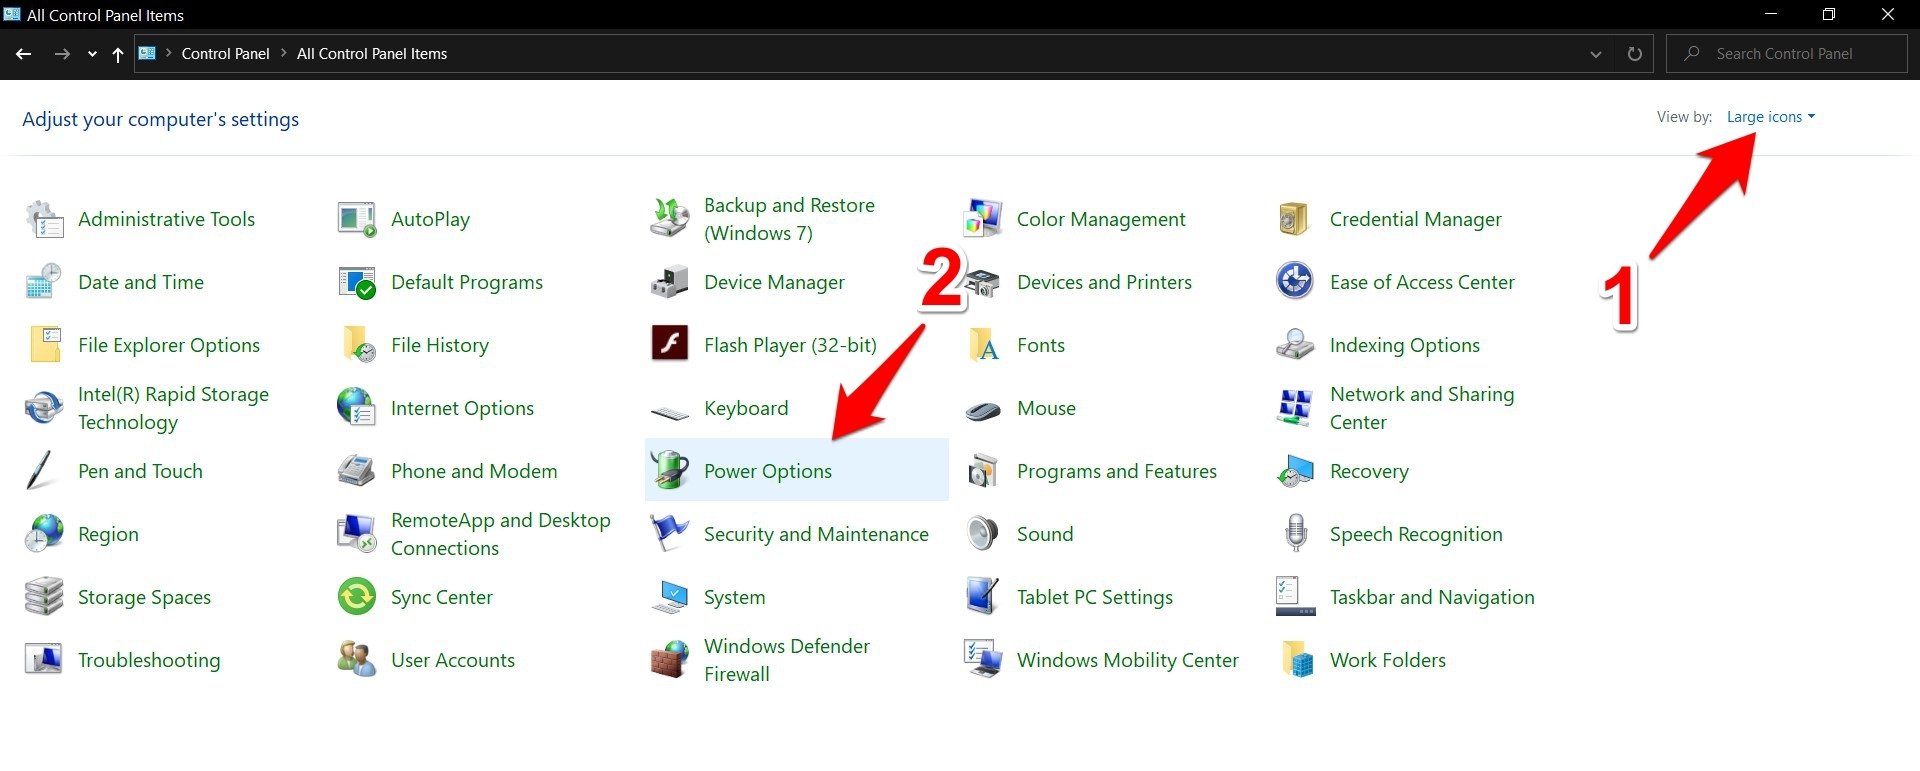 Launch Control Panel, change its View Type to Large Icon, and select Power Options